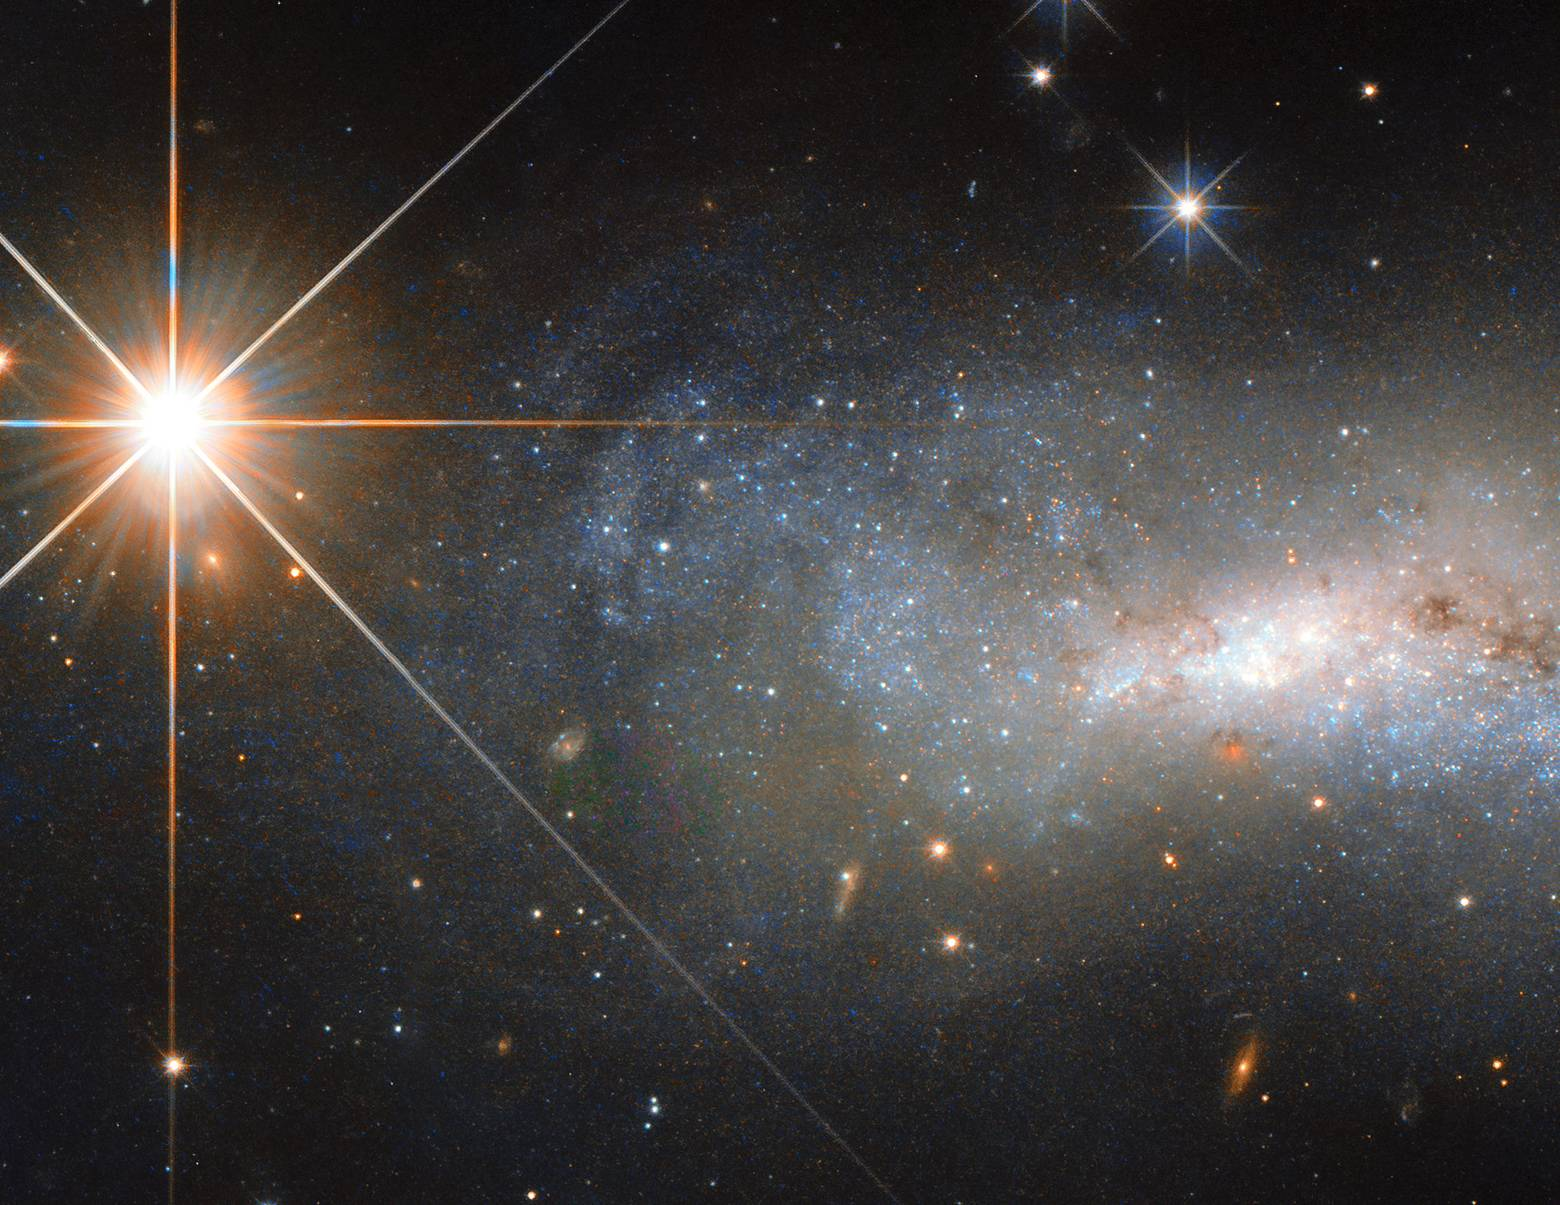 Astronomers spotted something strange in space and can't explain it